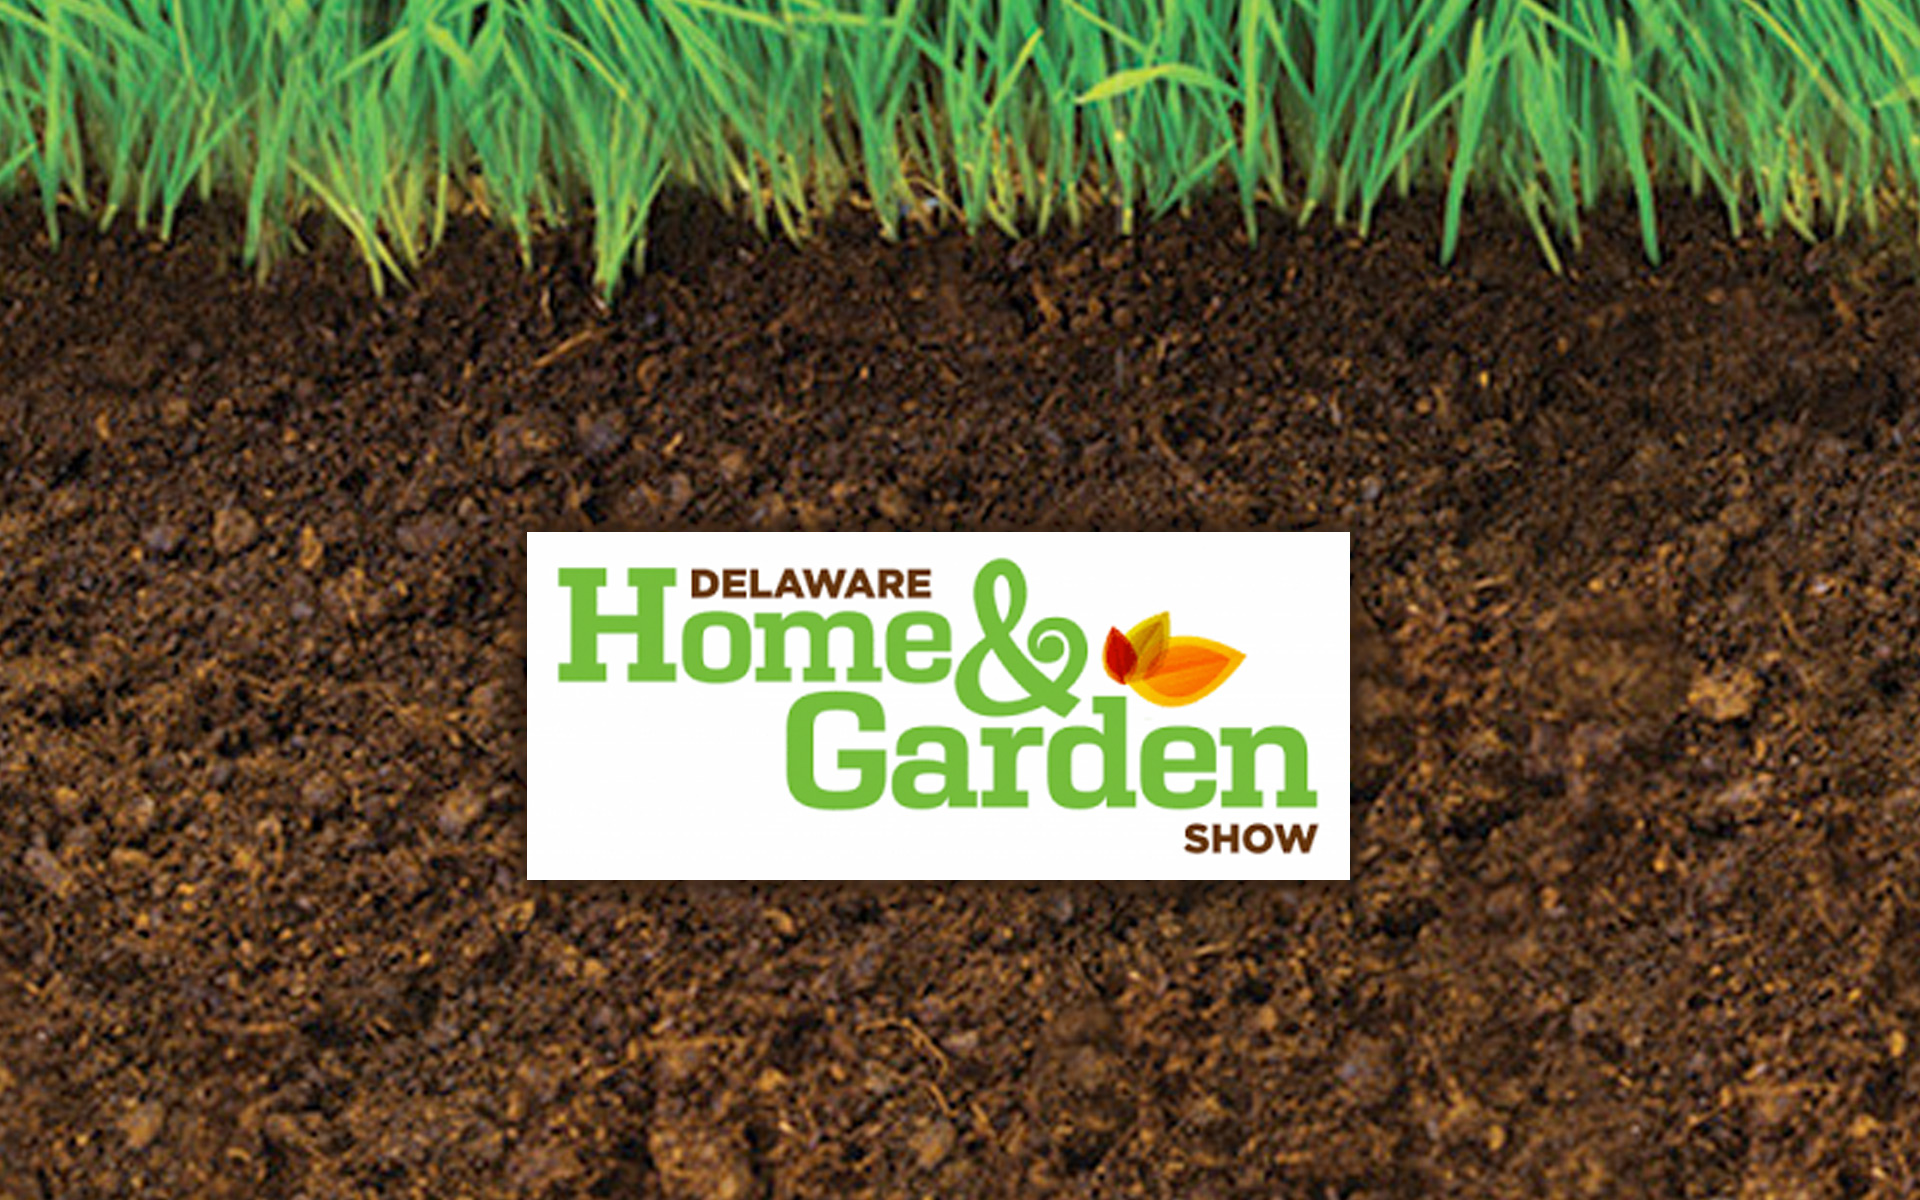 Delaware Home and Garden Show Saturday, April 2, 2016